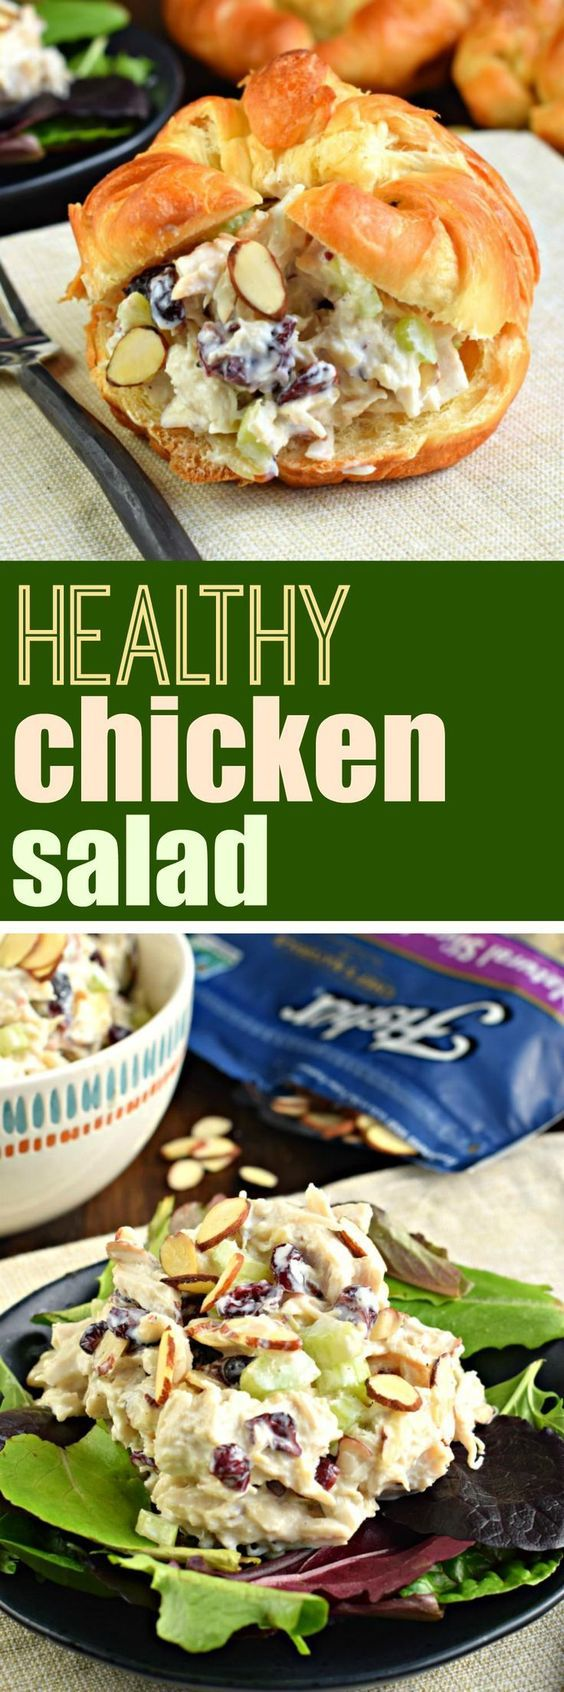 Youre going to love this heart Healthy Chicken Salad recipe. Packed with a crunch from sliced almonds, I took a classic salad and gave it a healthy makeover!